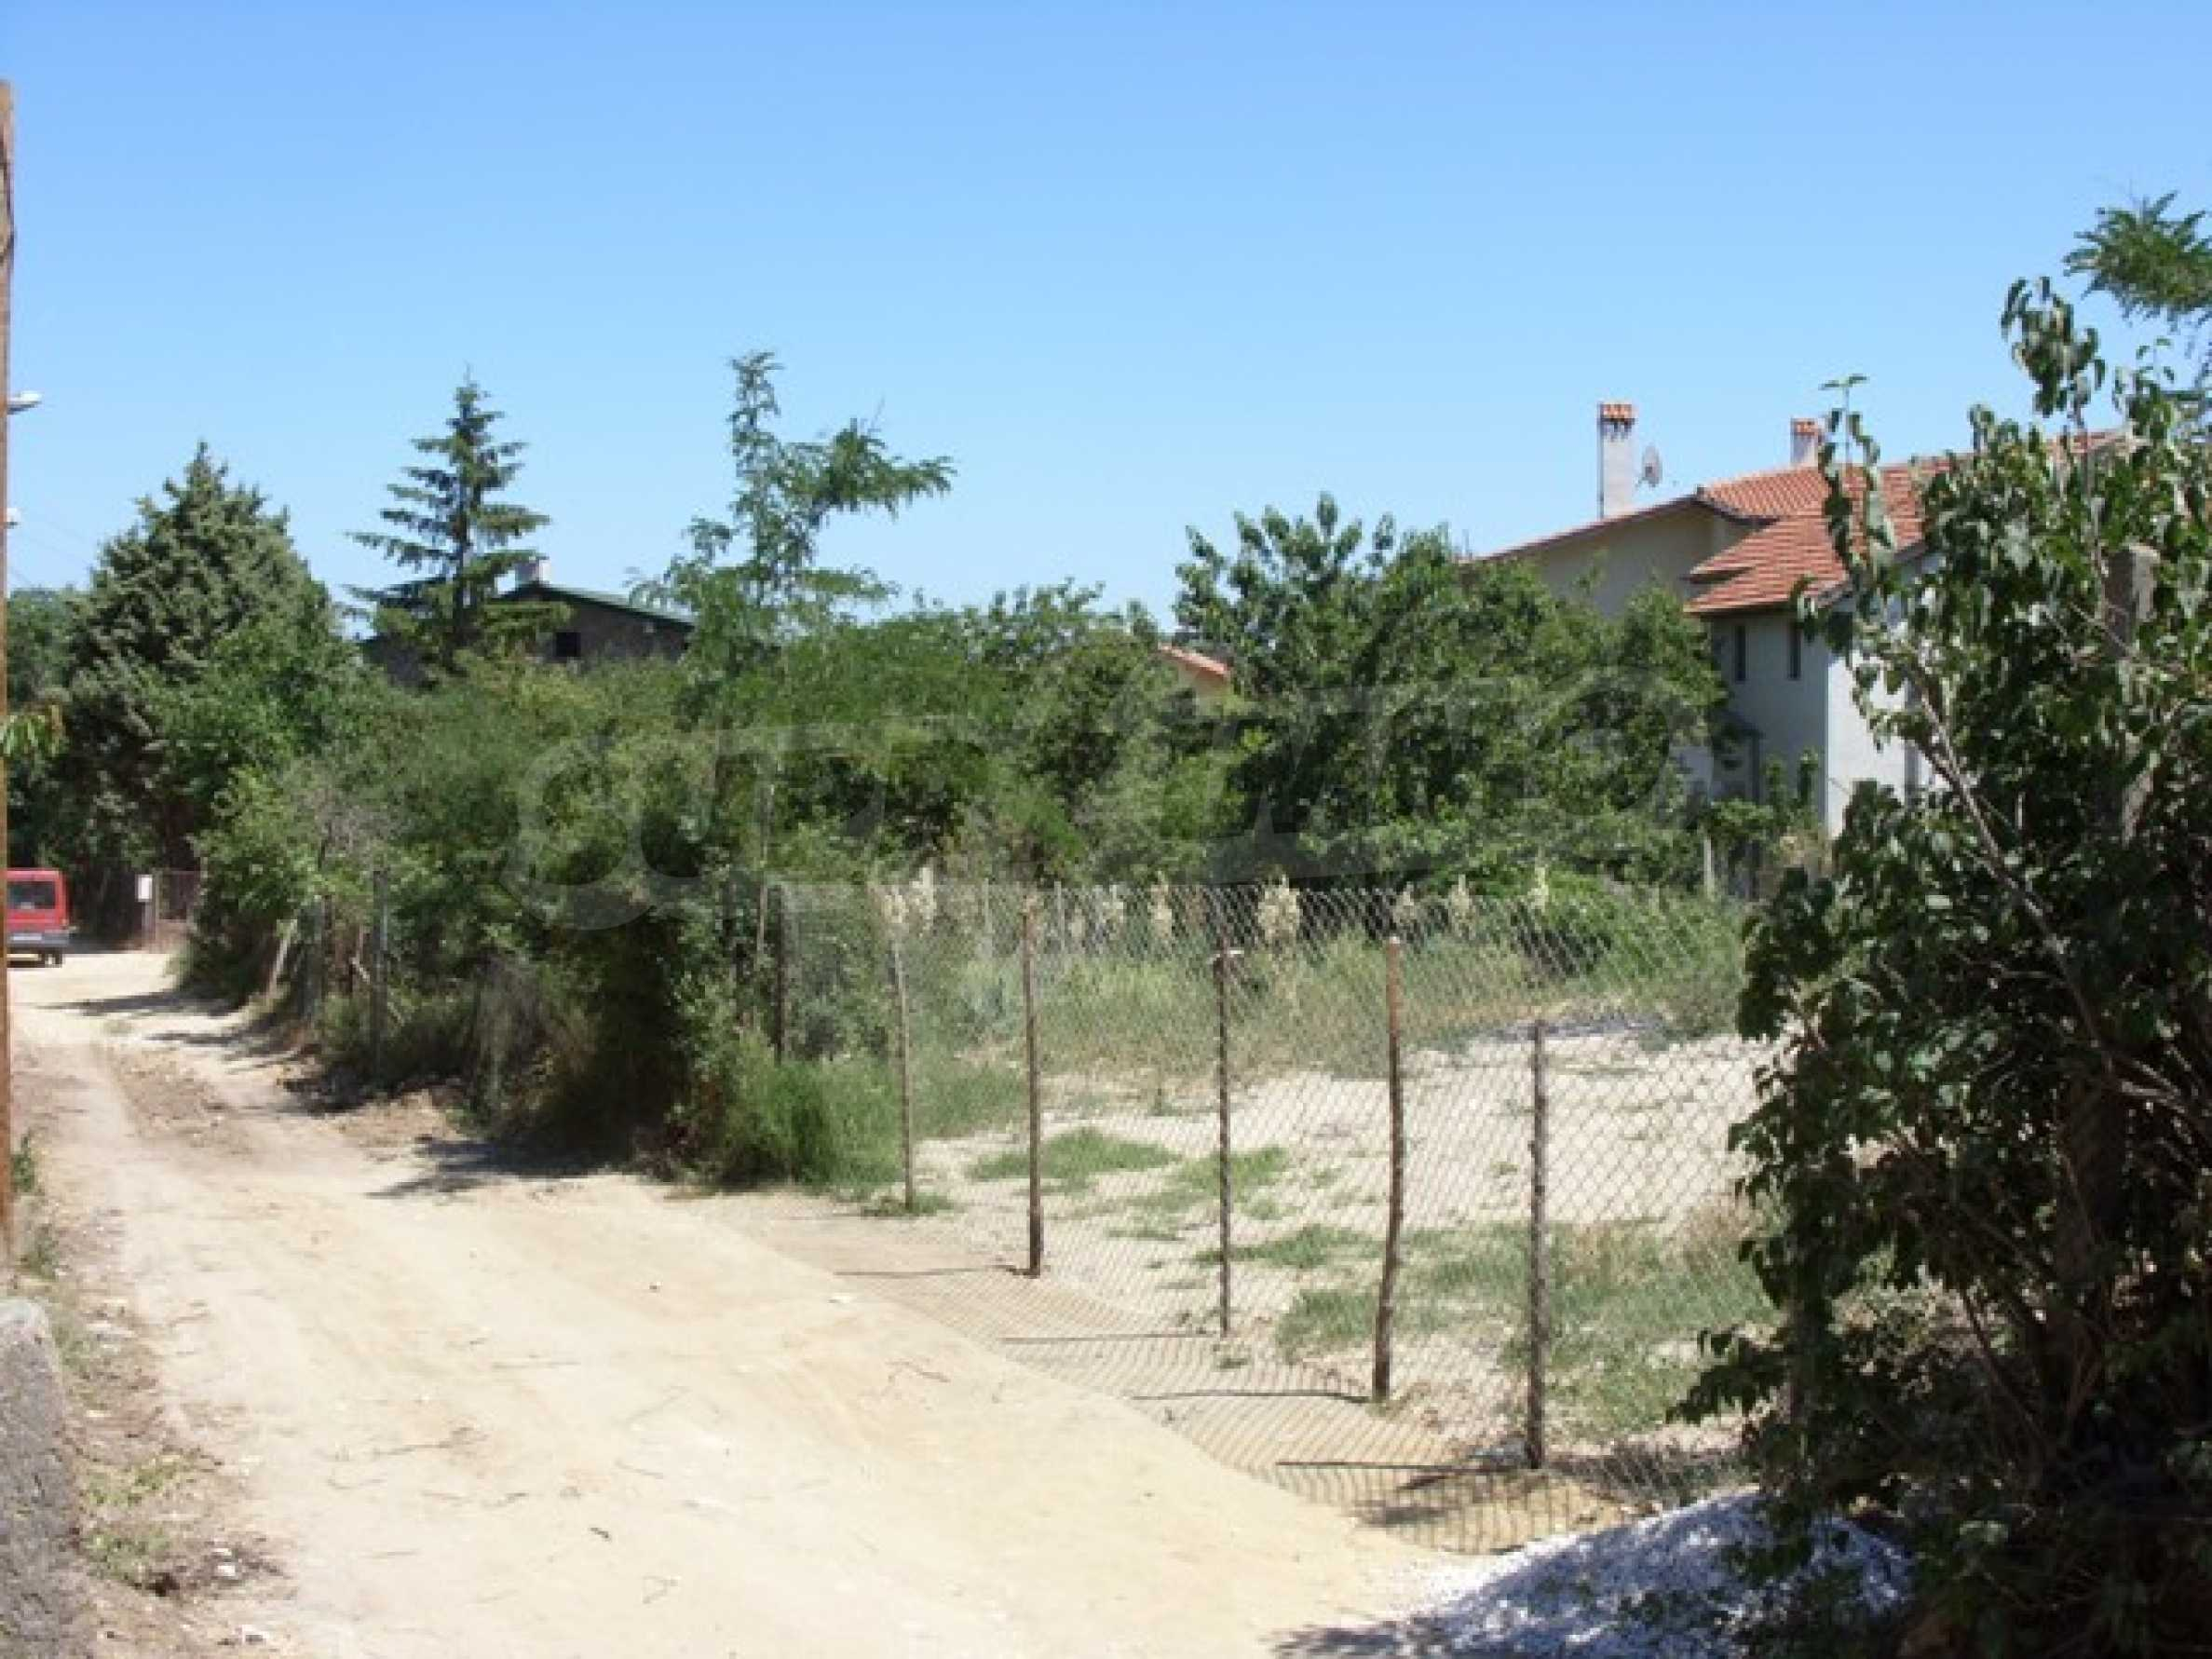 A plot in the area of Trakata 2